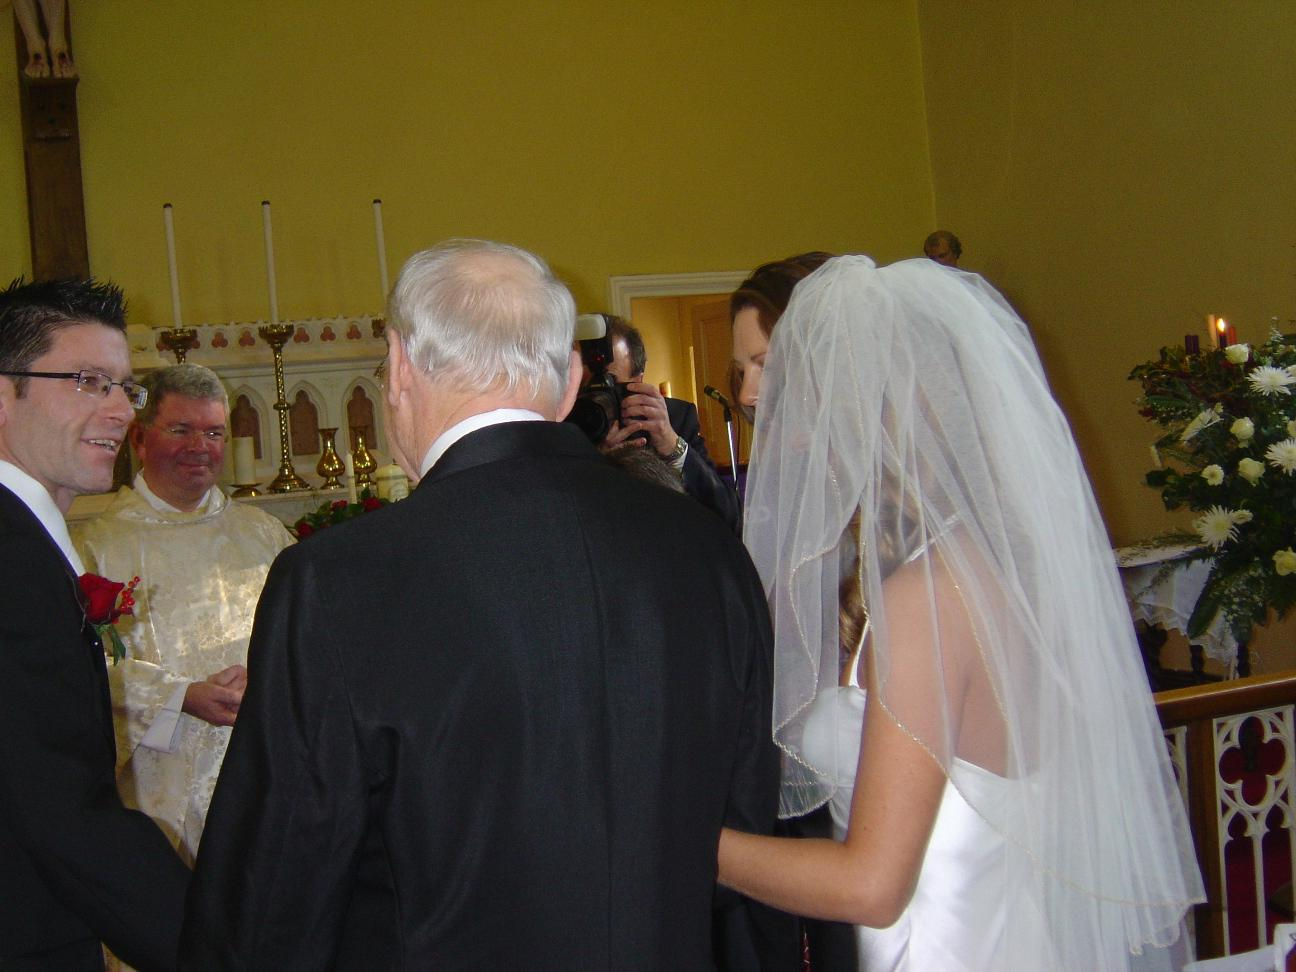 Album: 2006-12-Peter-and-Niamhs-Wedding: wicklow church 14